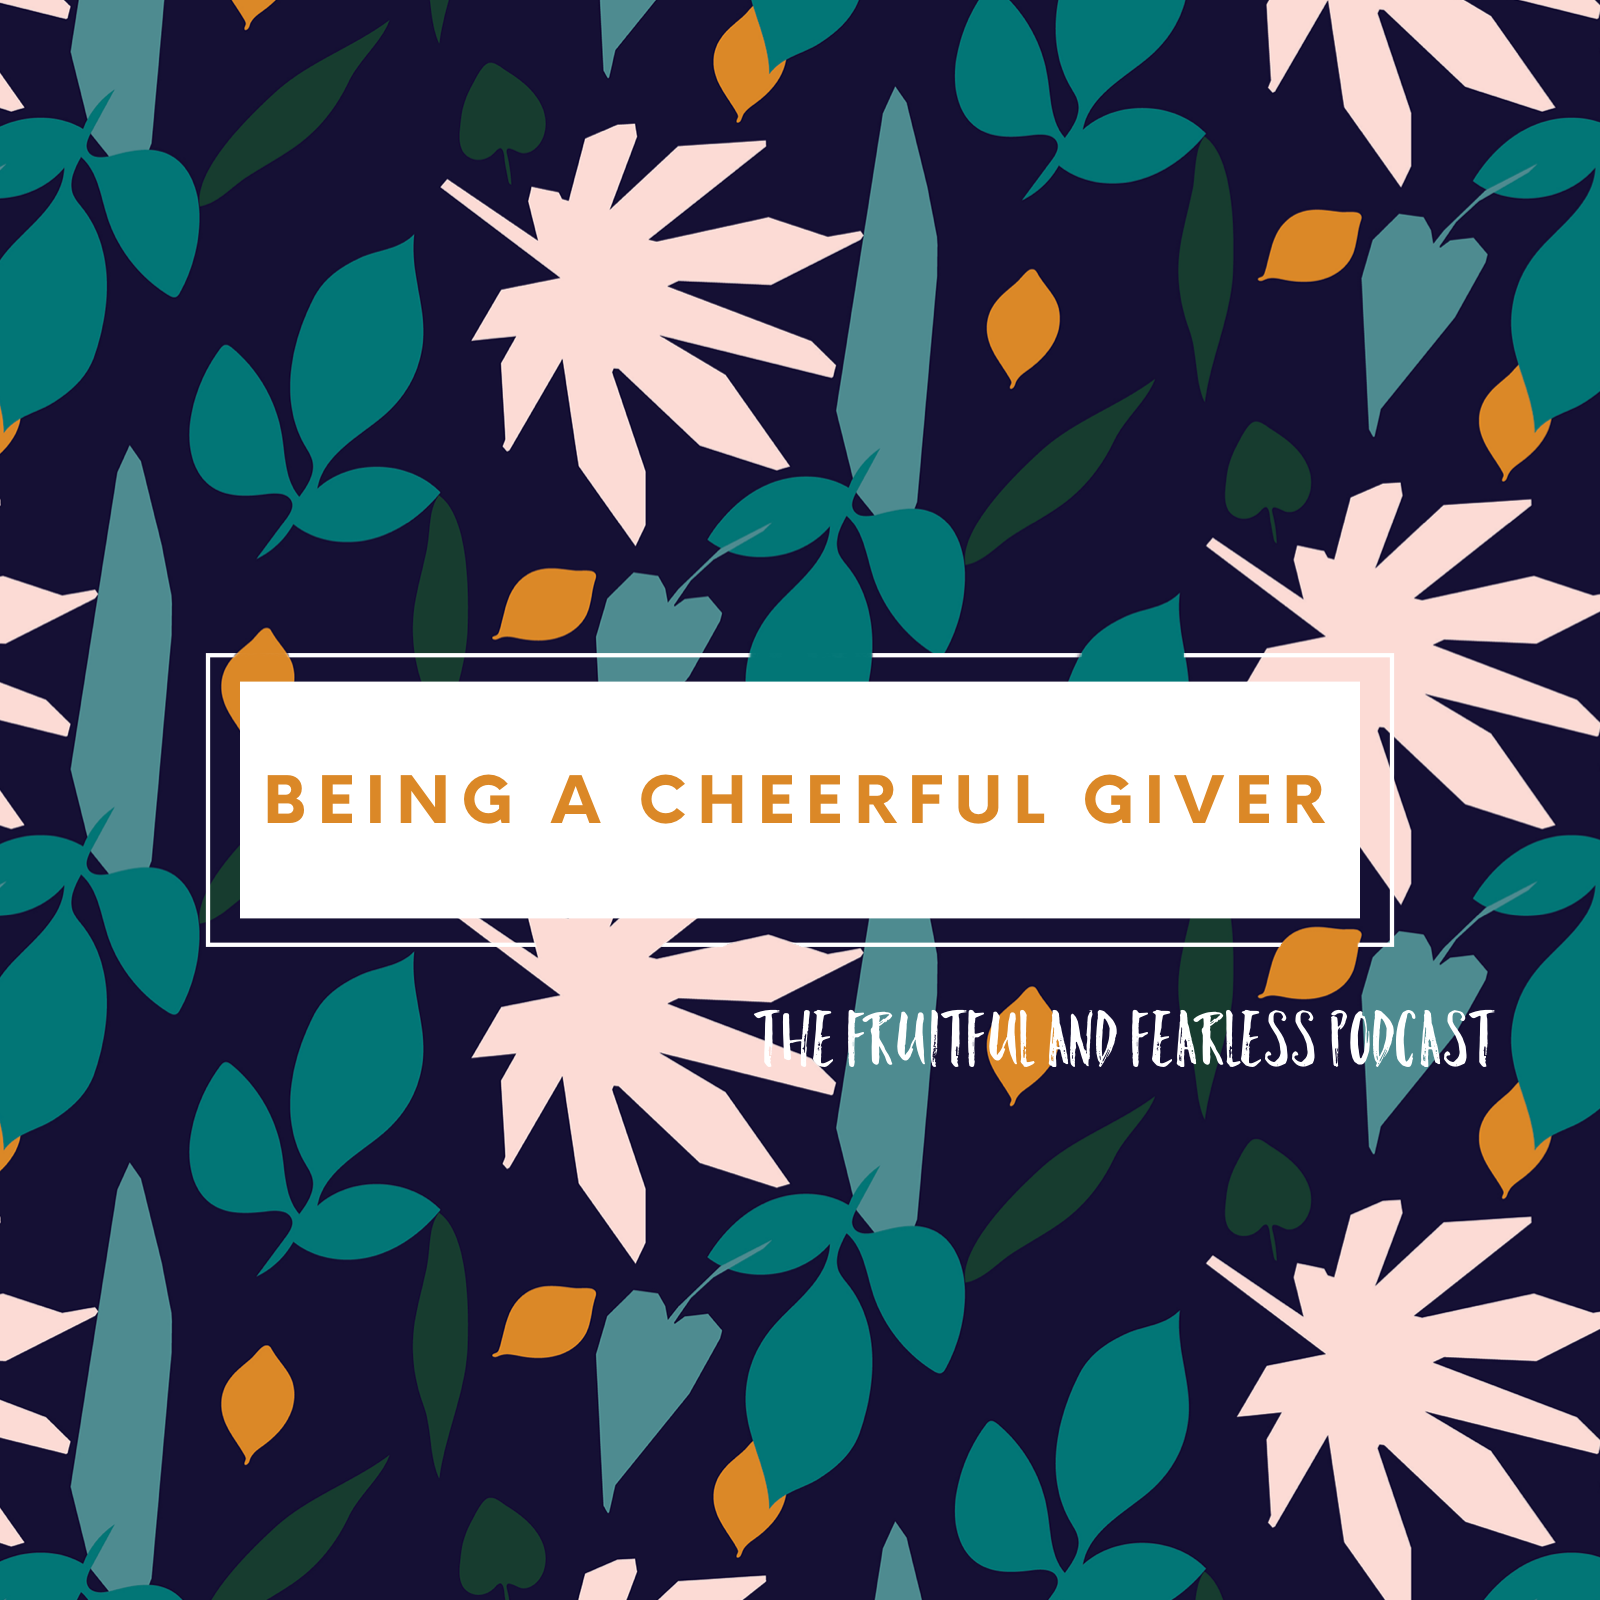 #31 Being a Cheerful Giver